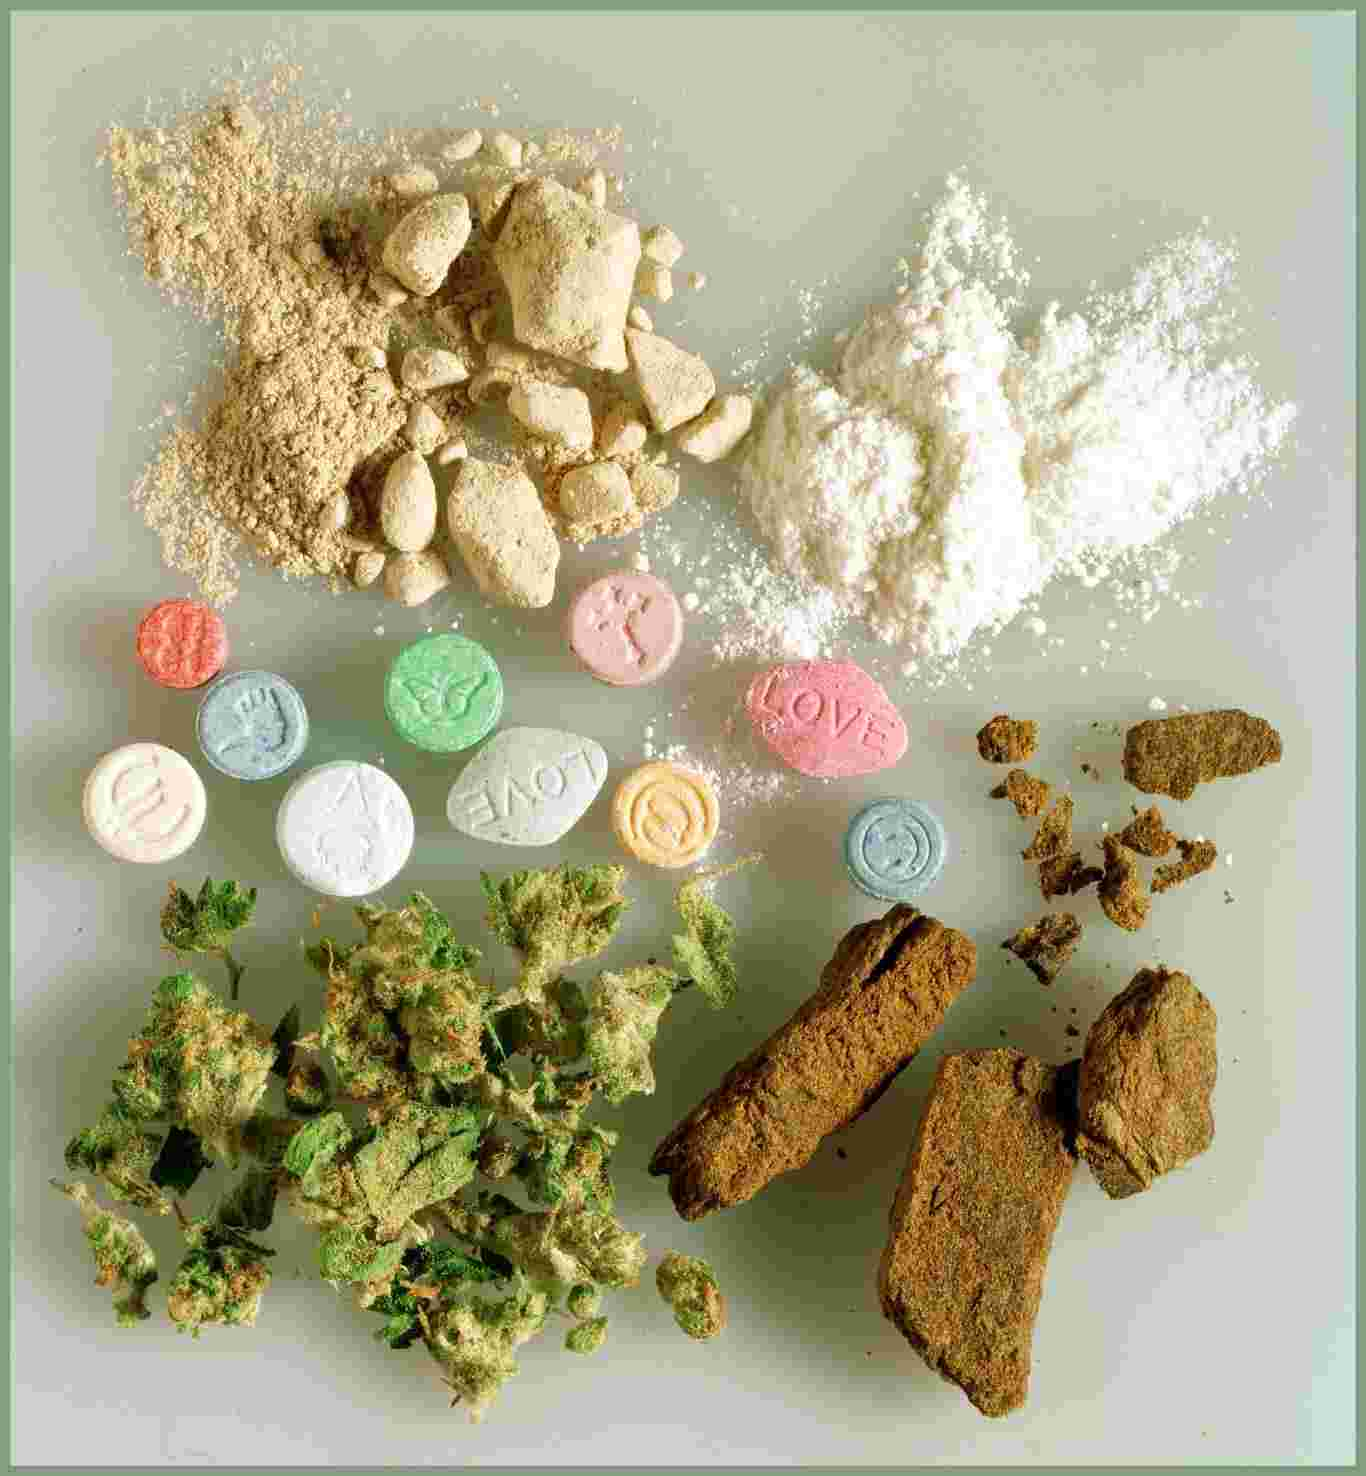 why are synthetic drugs legal